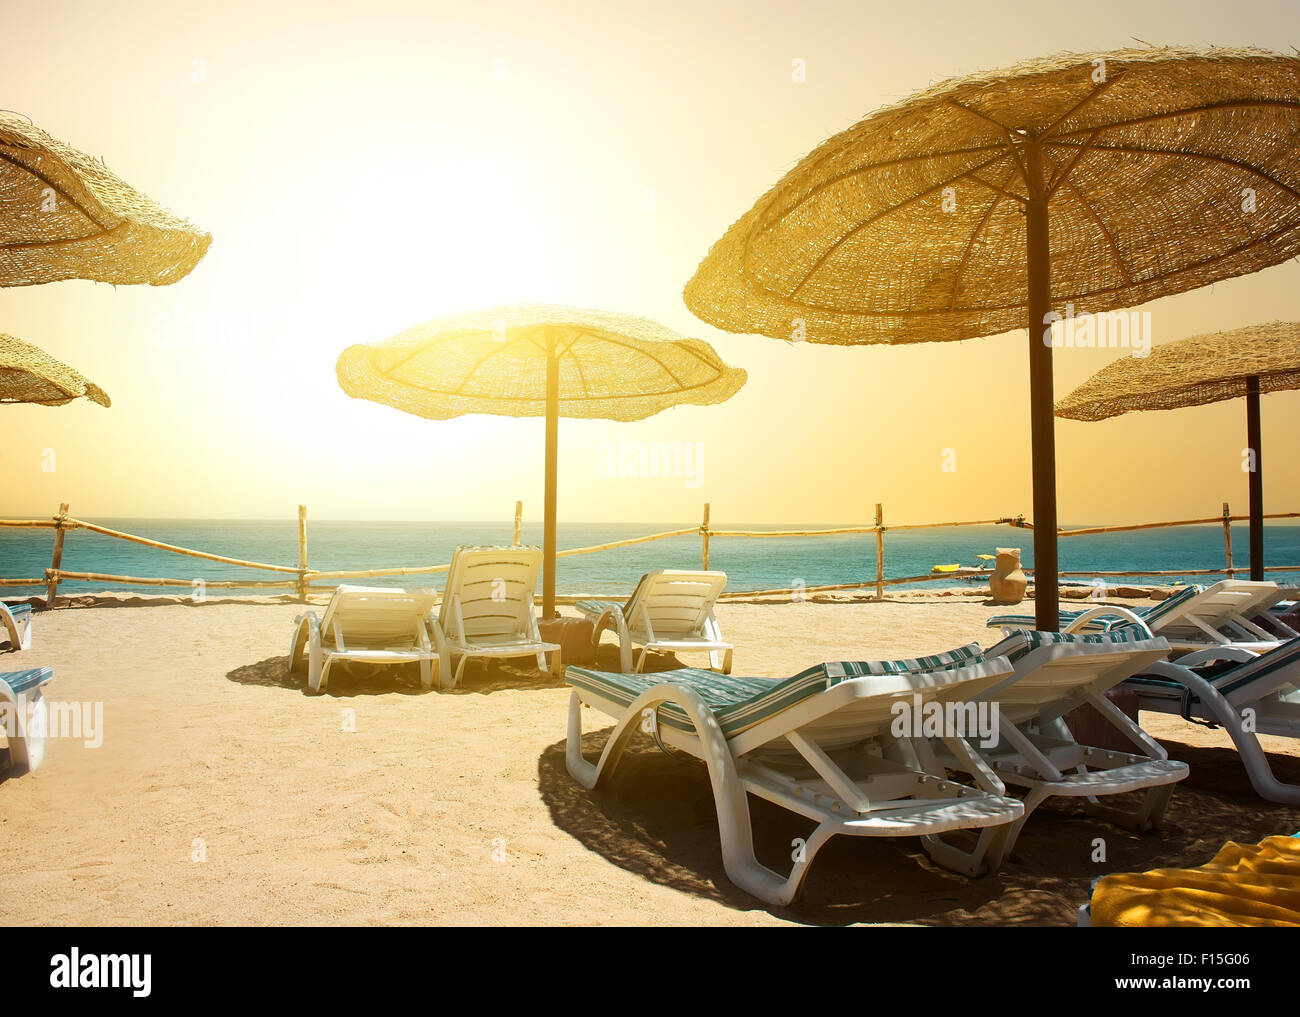 Sandy beach near red sea at sunset - Stock Image